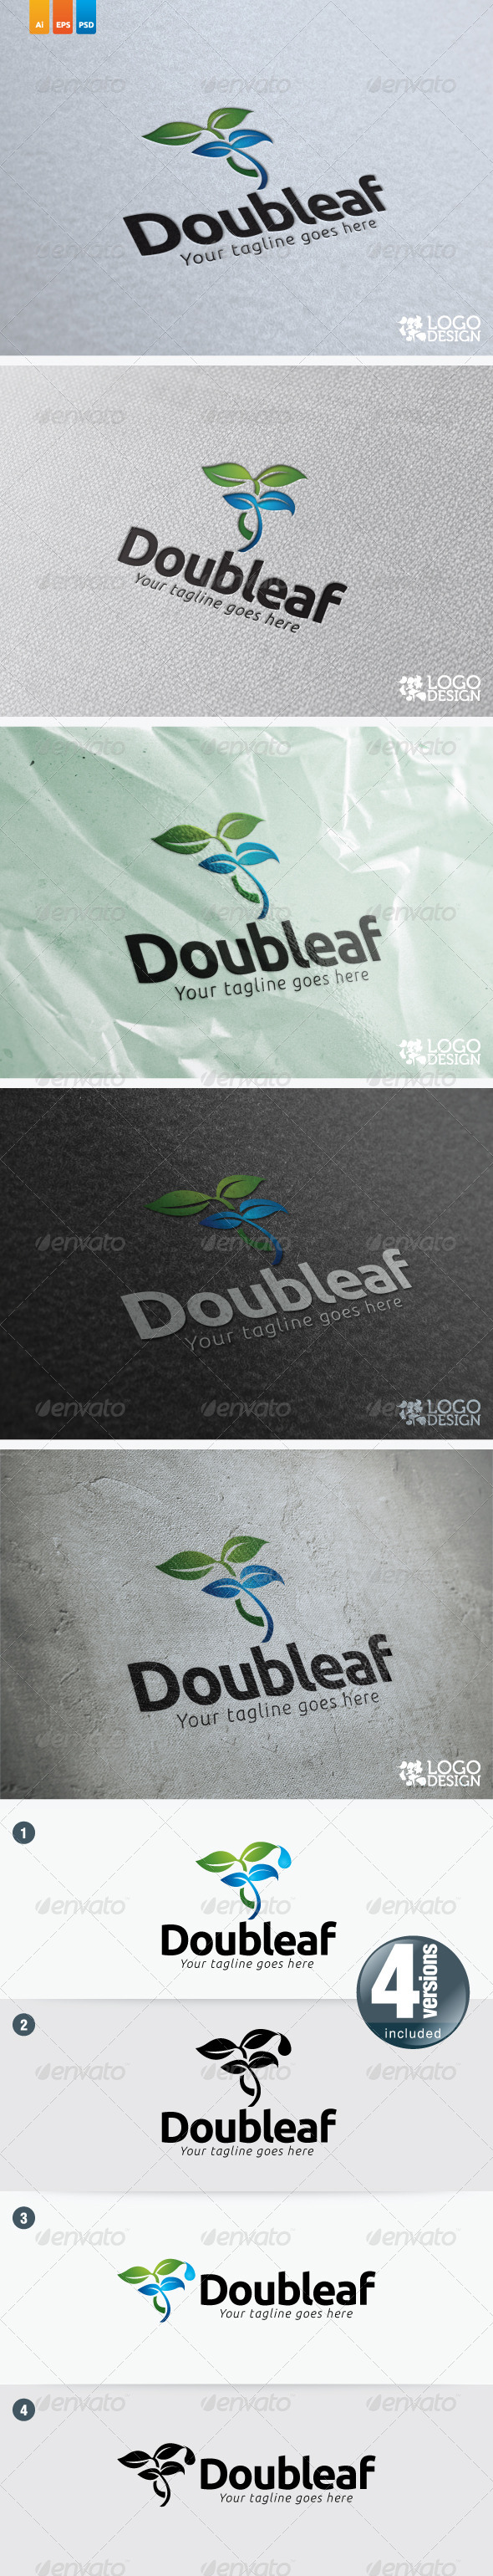 GraphicRiver Doubleaf 5143309